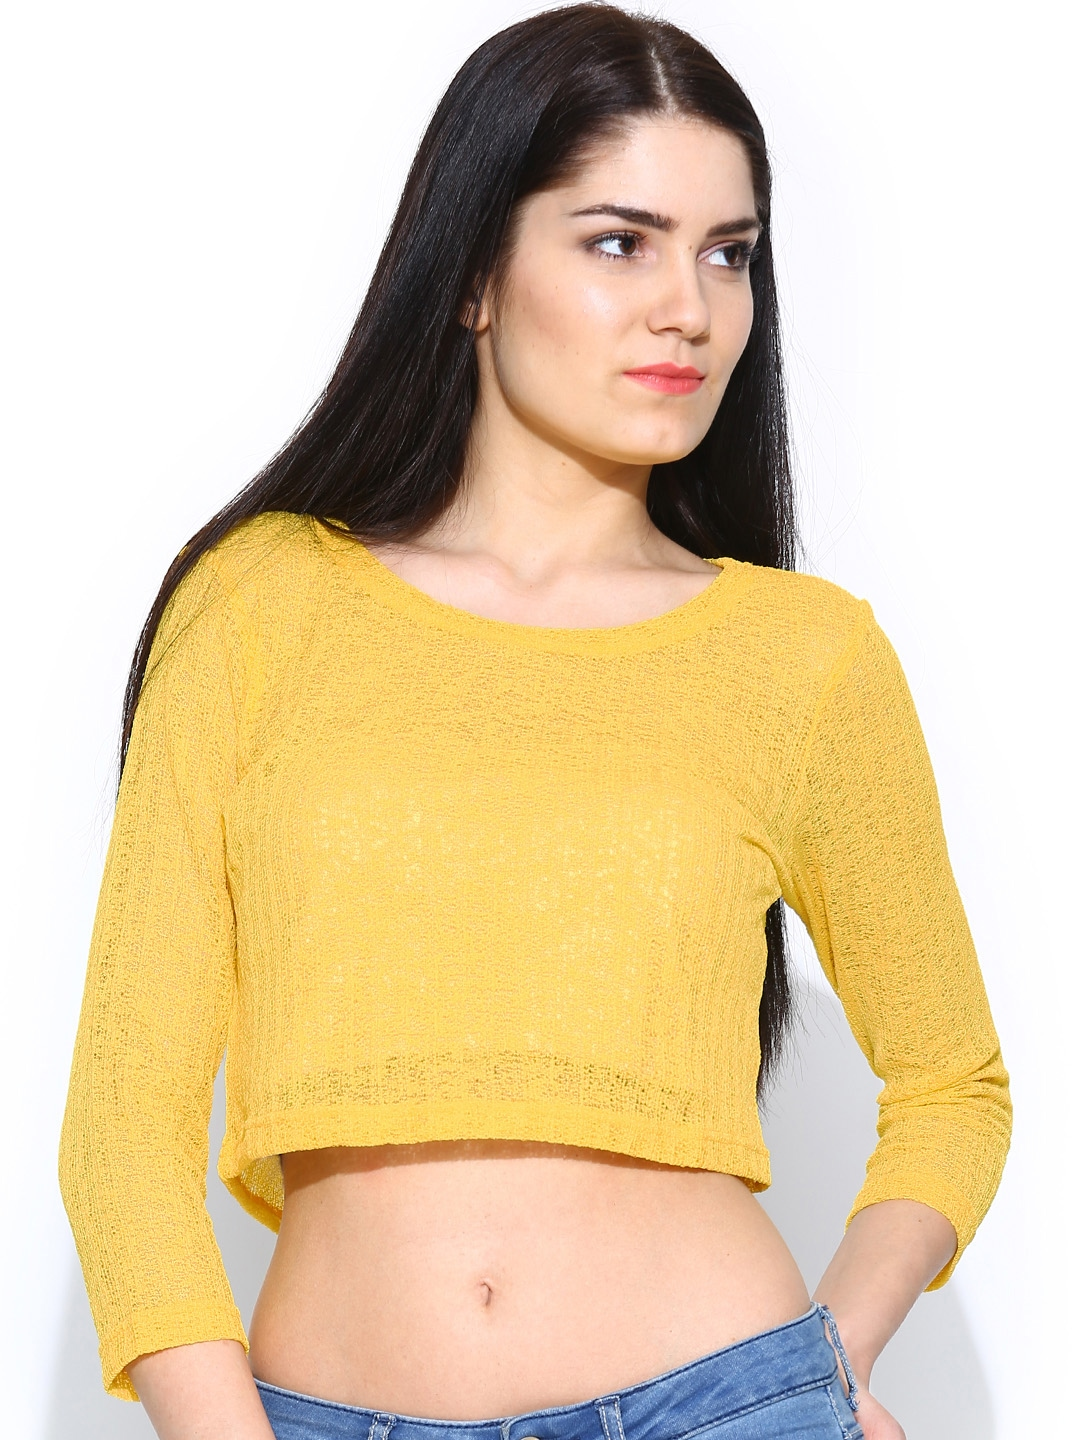 Find the latest and trendy styles of yellow crop top at ZAFUL. We are pleased you with the latest trends in high fashion yellow crop top.